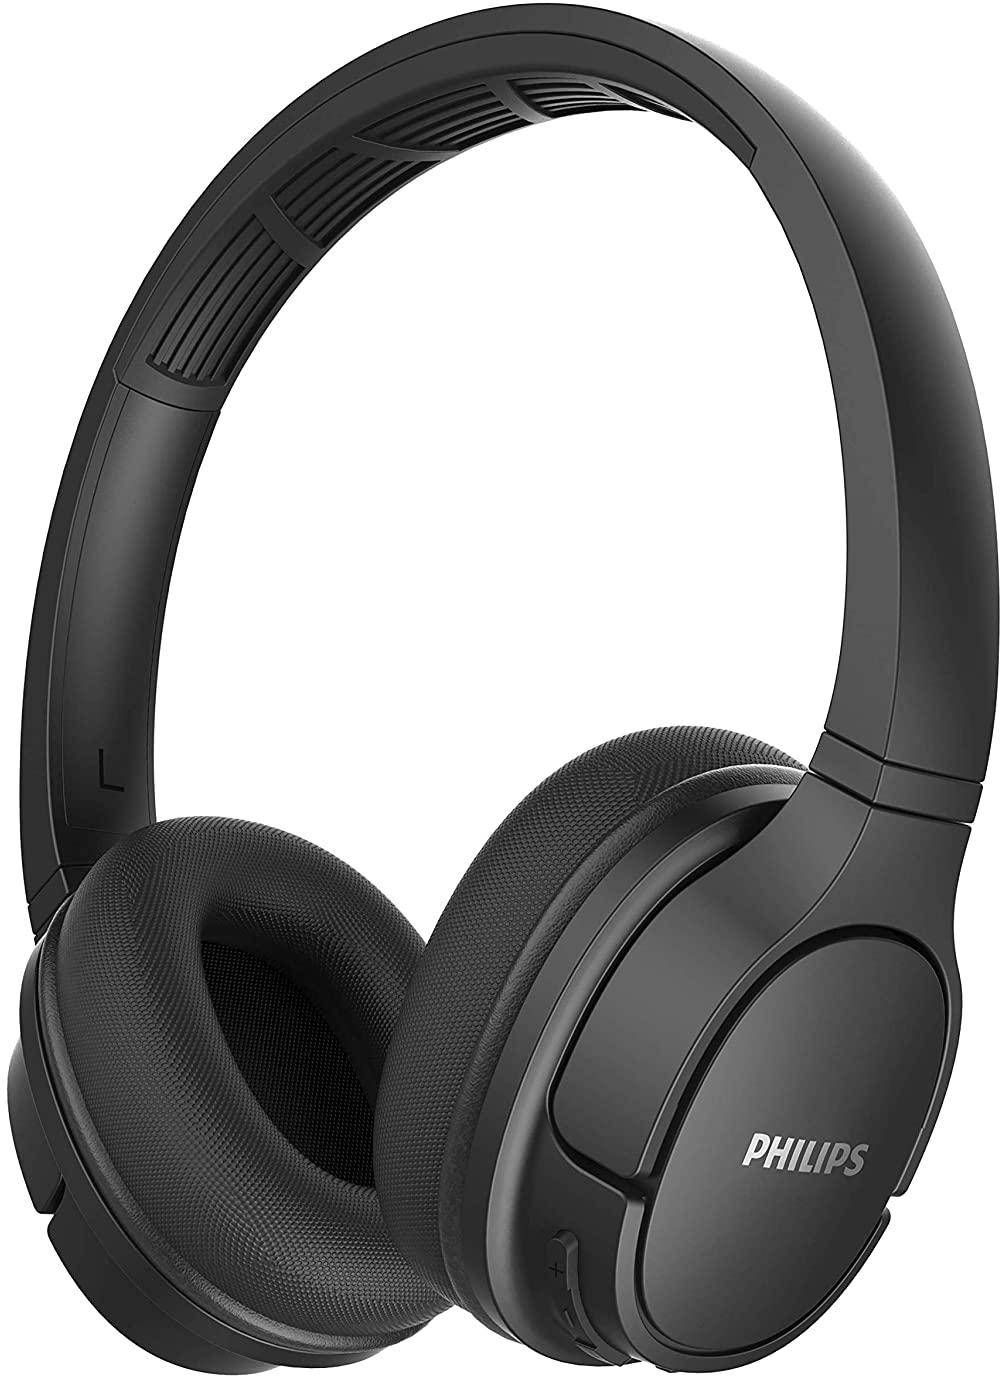 Philips TASH402BK Wireless Headphones Built-in Mic with Echo Cancellation zoom image